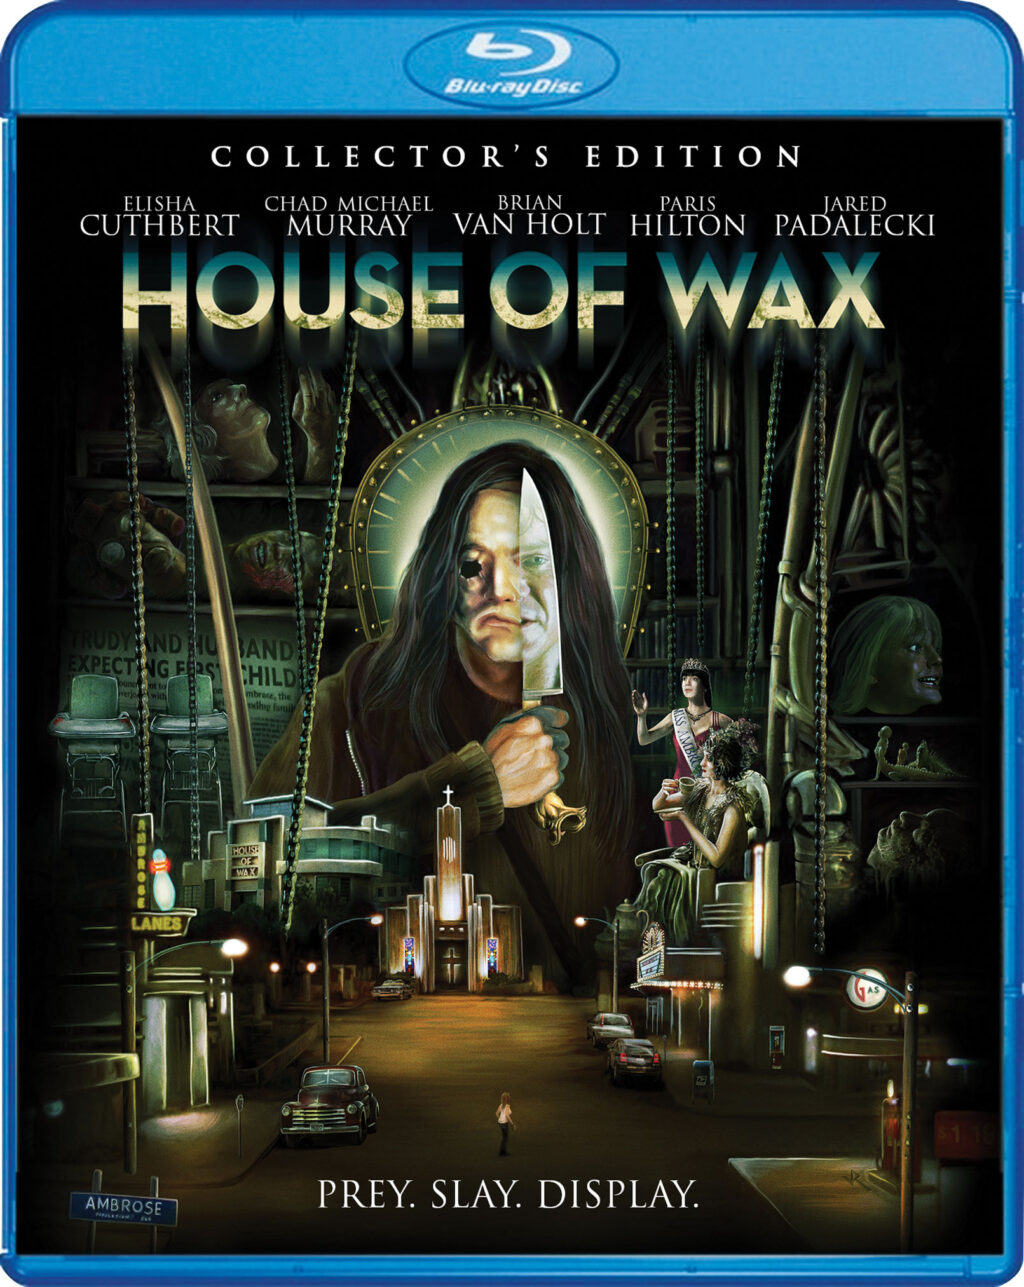 house of wax blu 1024x1287 - HOUSE OF WAX Blu-ray Review - Dip Into Scream Factory's Latest Upgrade